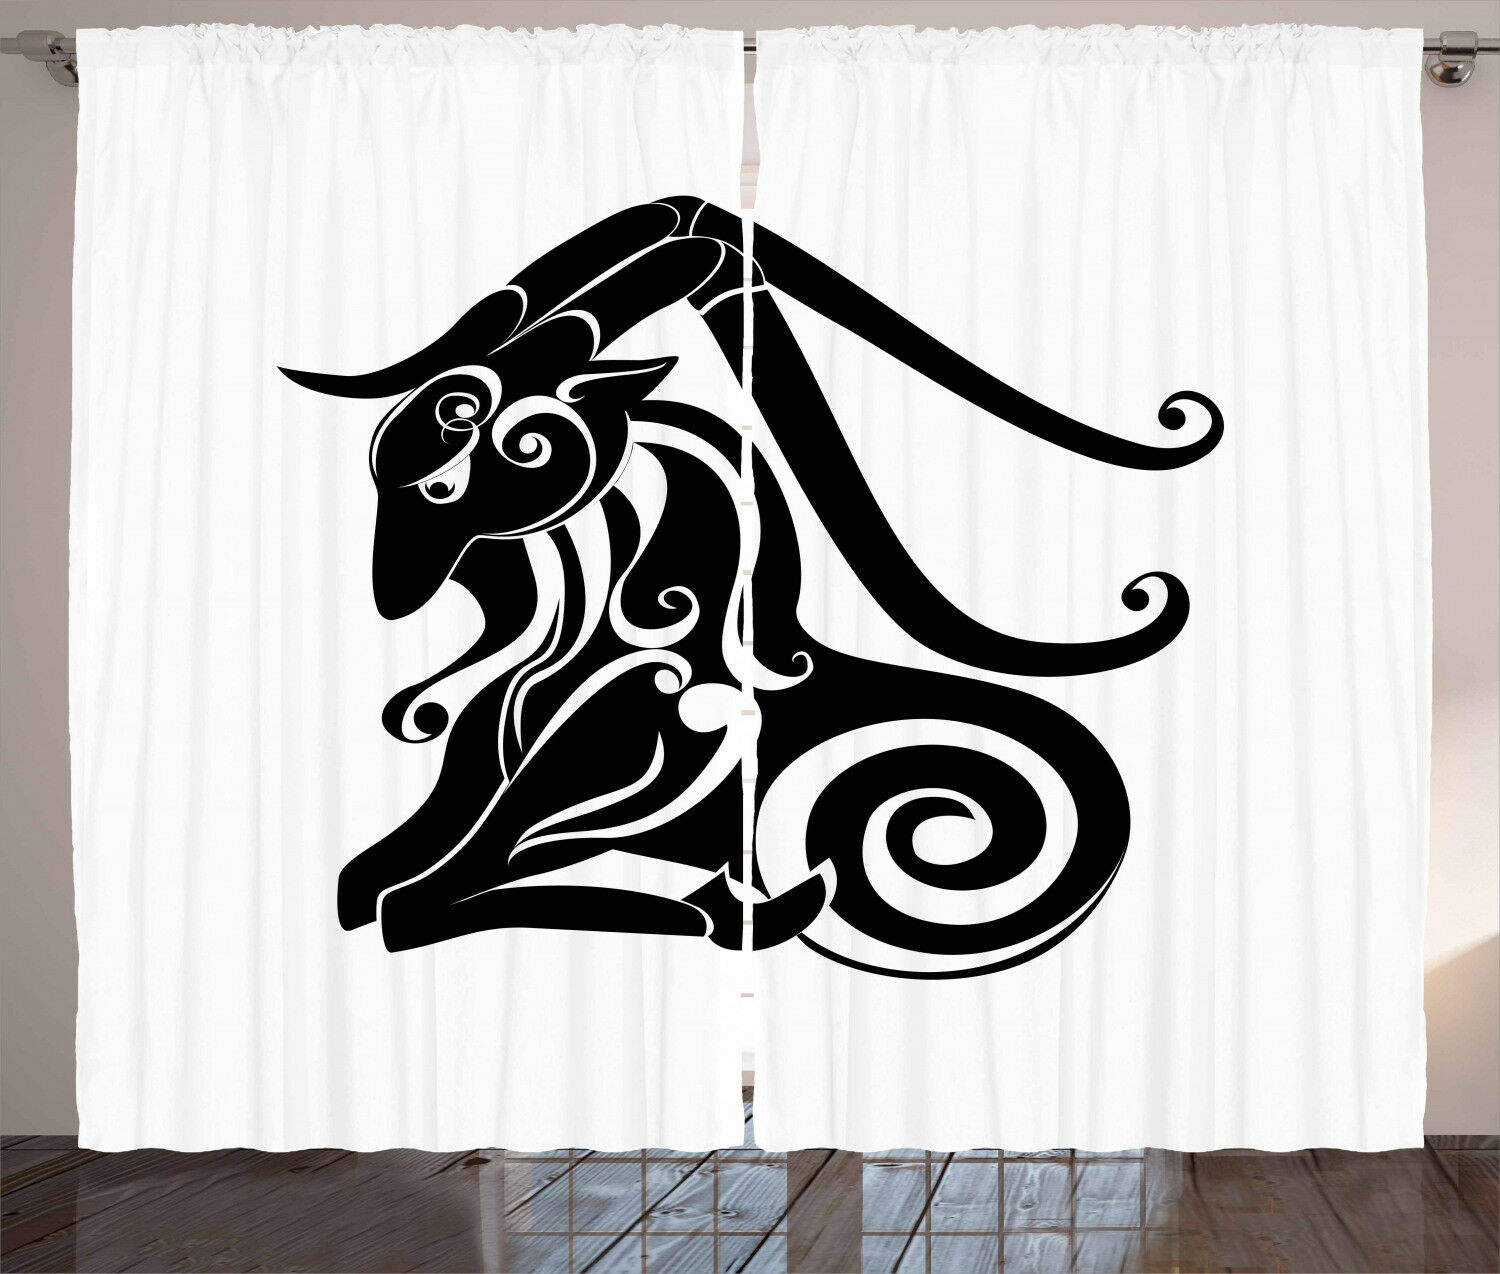 Zodiac Curtains 2 Panel Set for Home Home Home Decor 5 Größes Available Window Drapes 5a3123